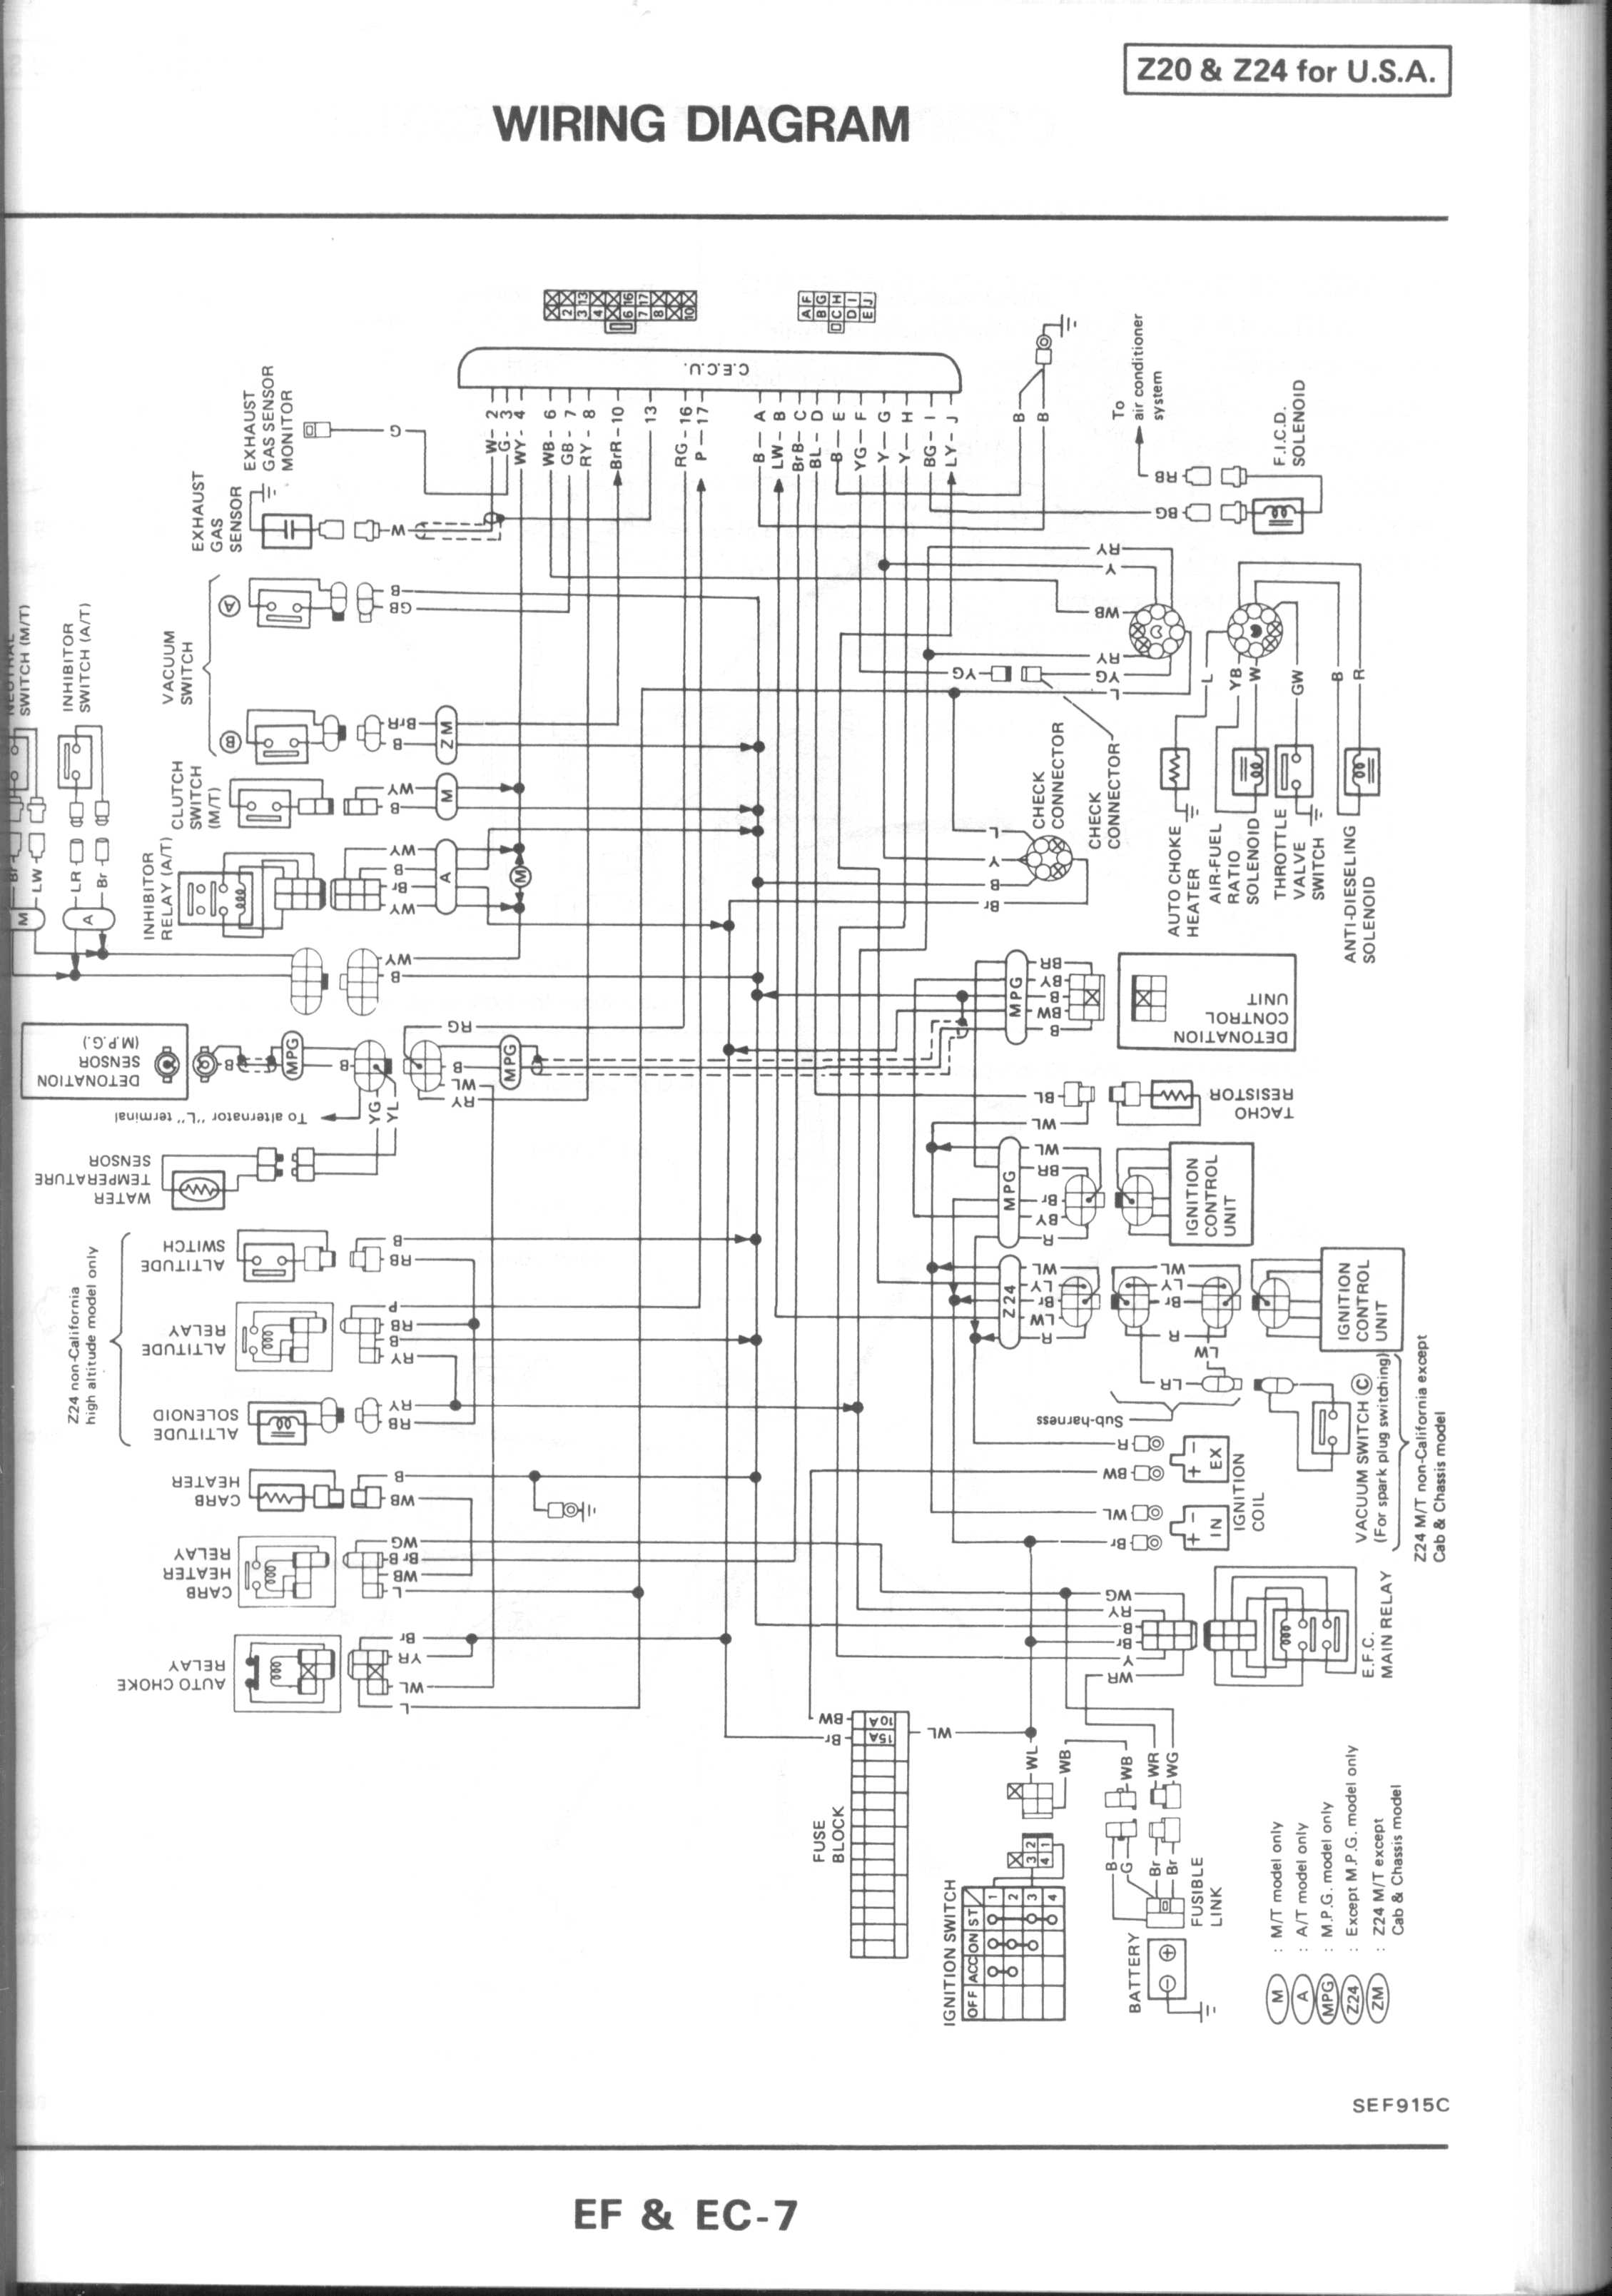 720_z24_ecu_wiring nissan nut Wiring Harness Diagram at creativeand.co